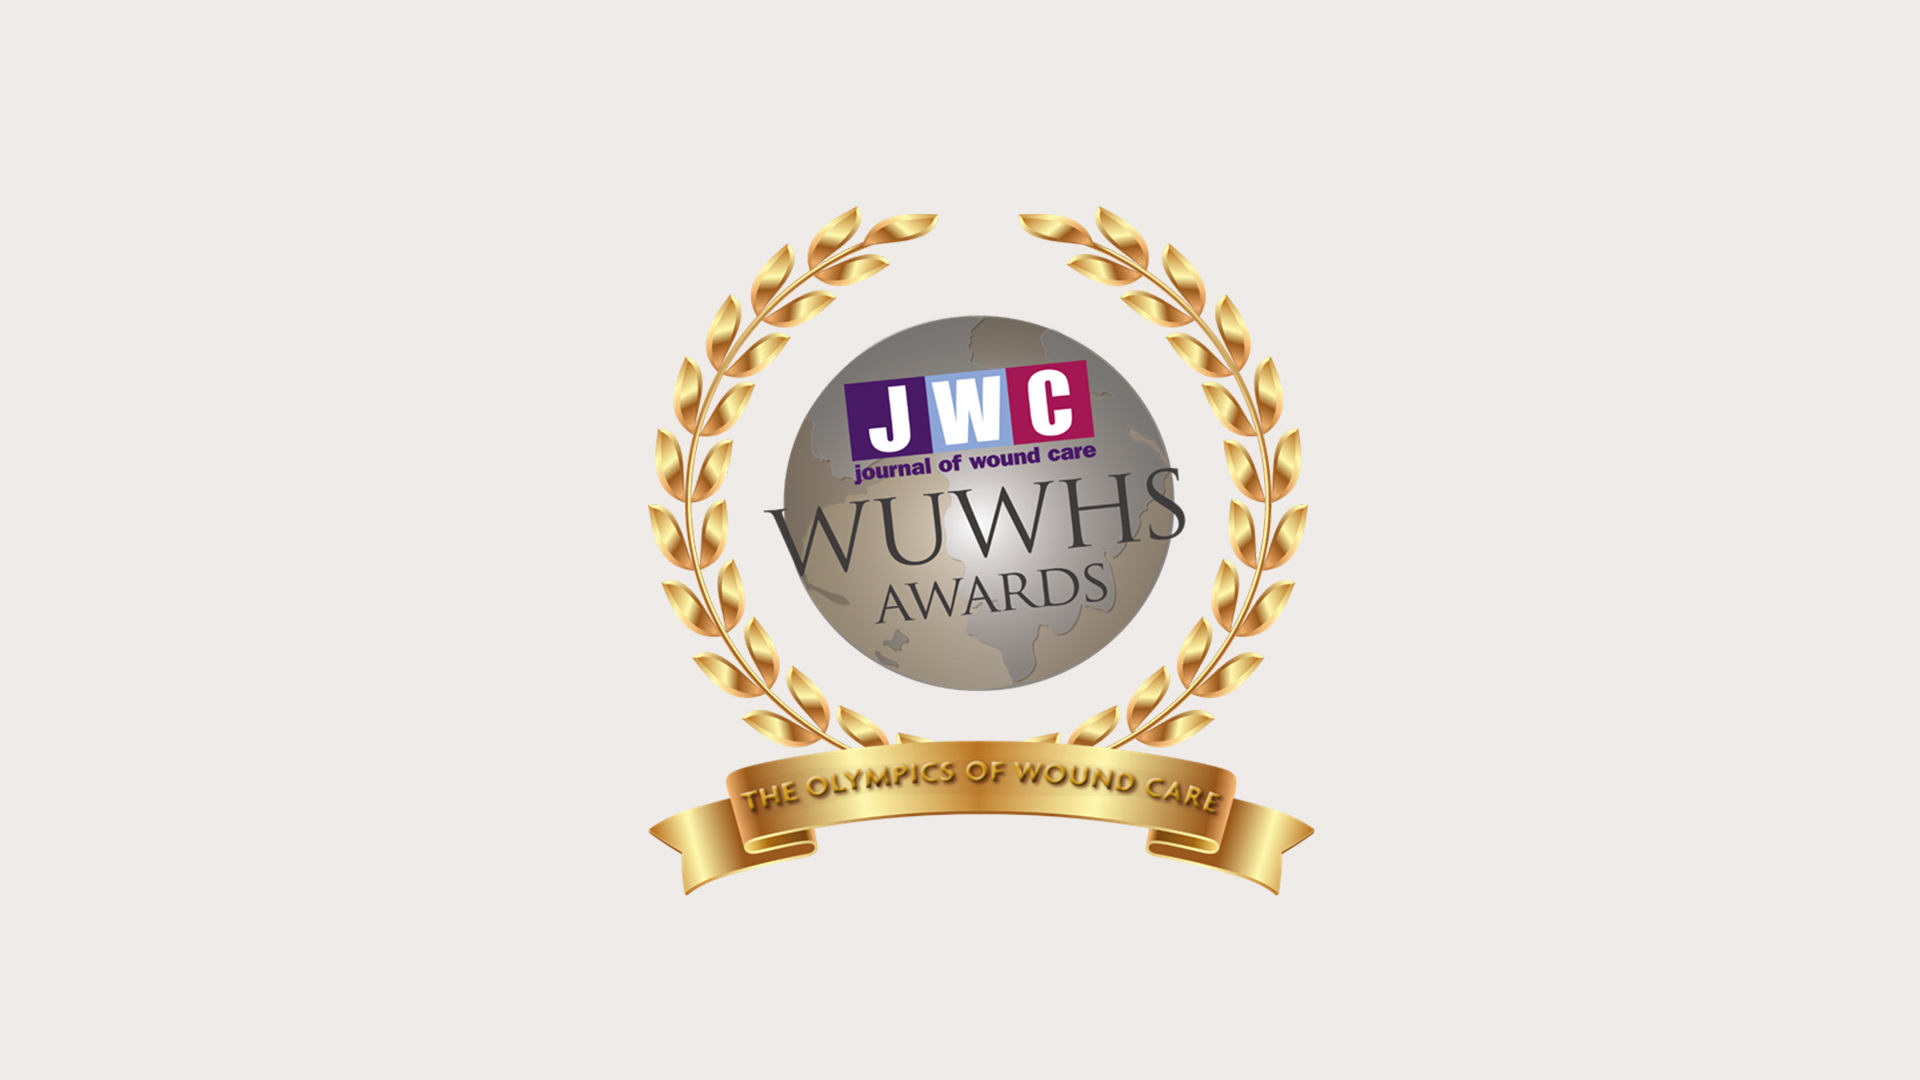 JWC Awards logo